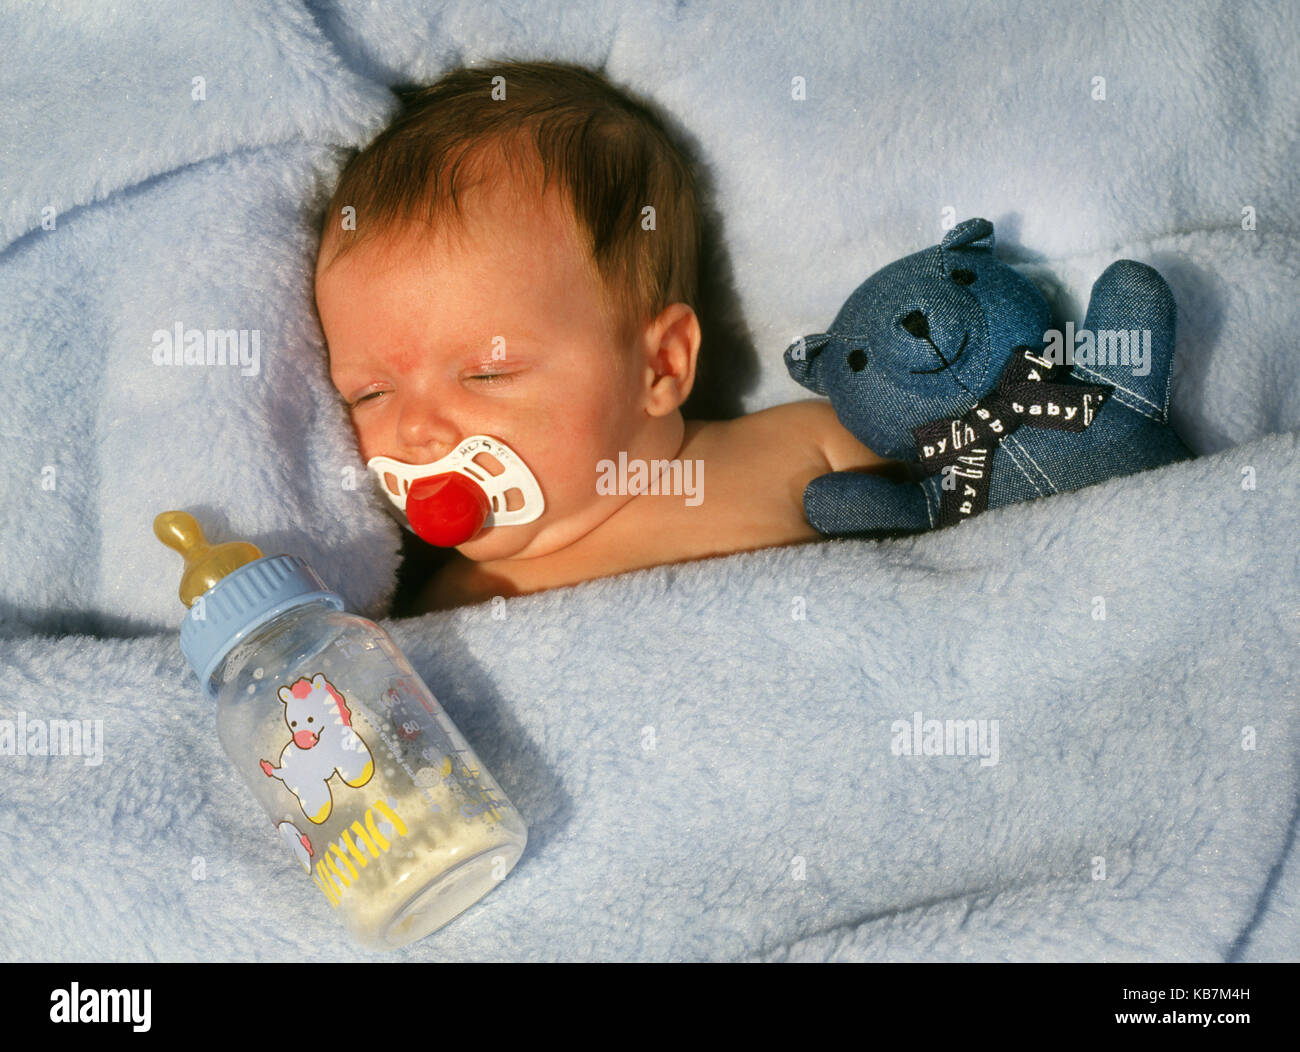 A two week old baby girl sucking on a pacifier as she sleeps Stock Photo